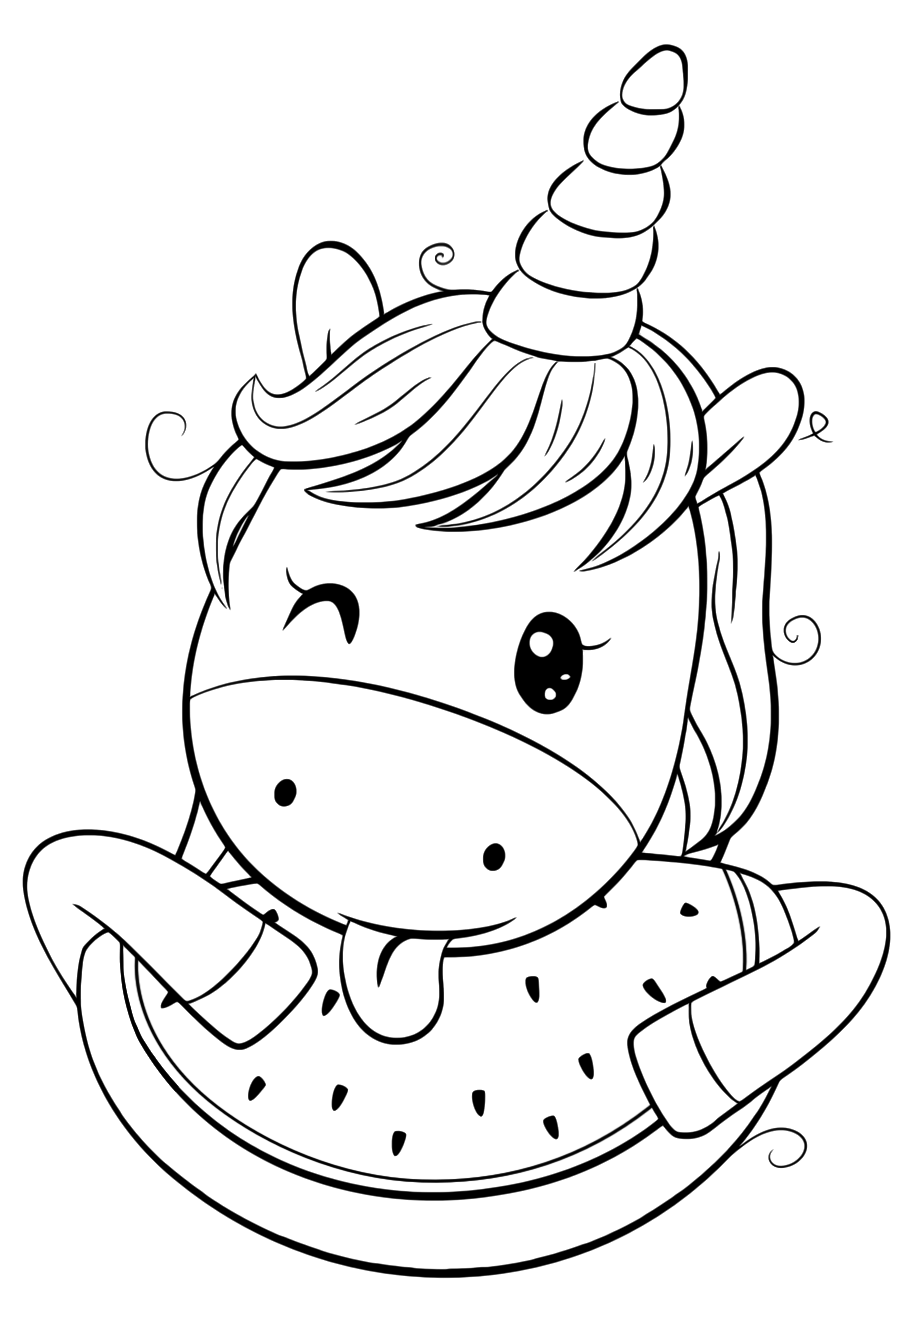 unicorn coloring unicorn drawing cute unicorn with watermelon coloring pages for you drawing unicorn unicorn coloring